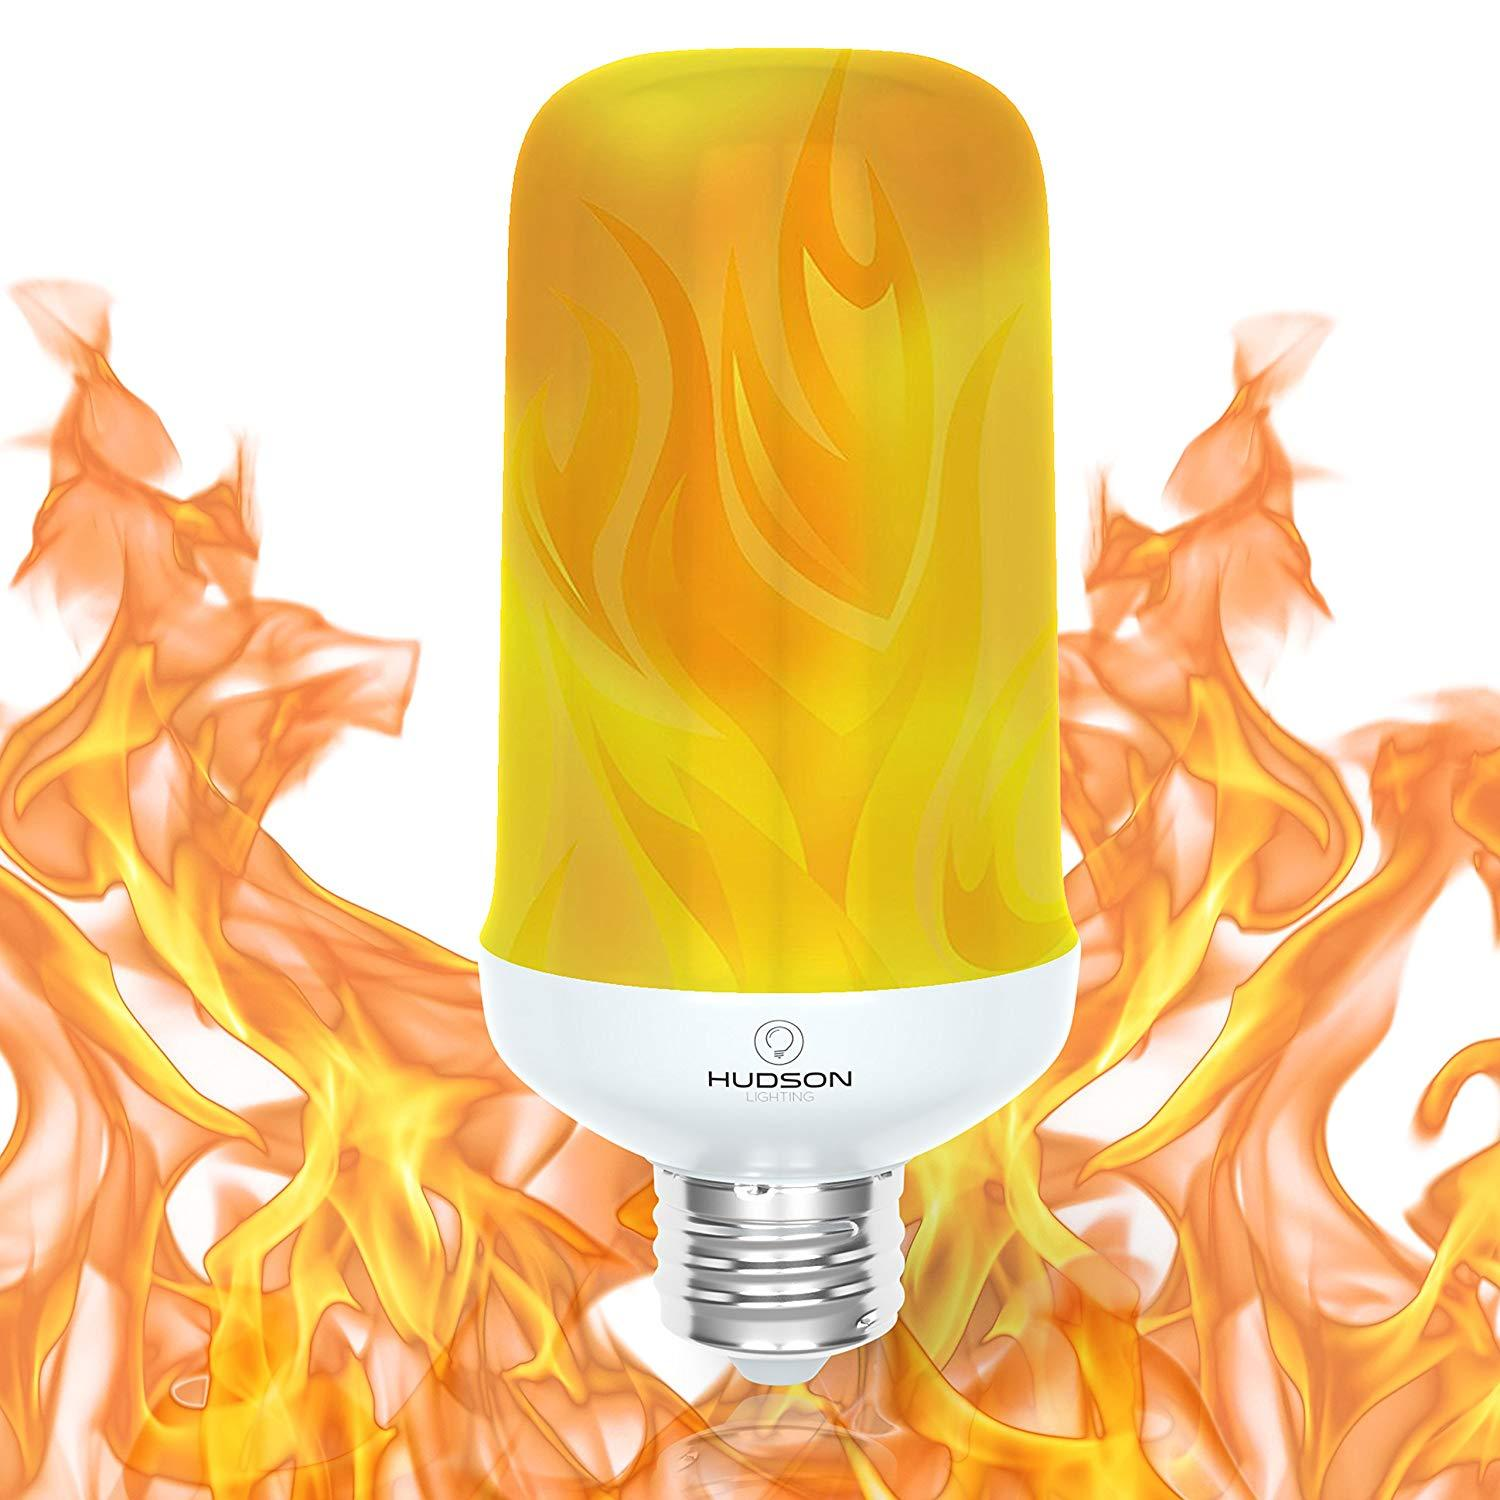 Gravity Sensor LED Flame Flicker Light Bulb